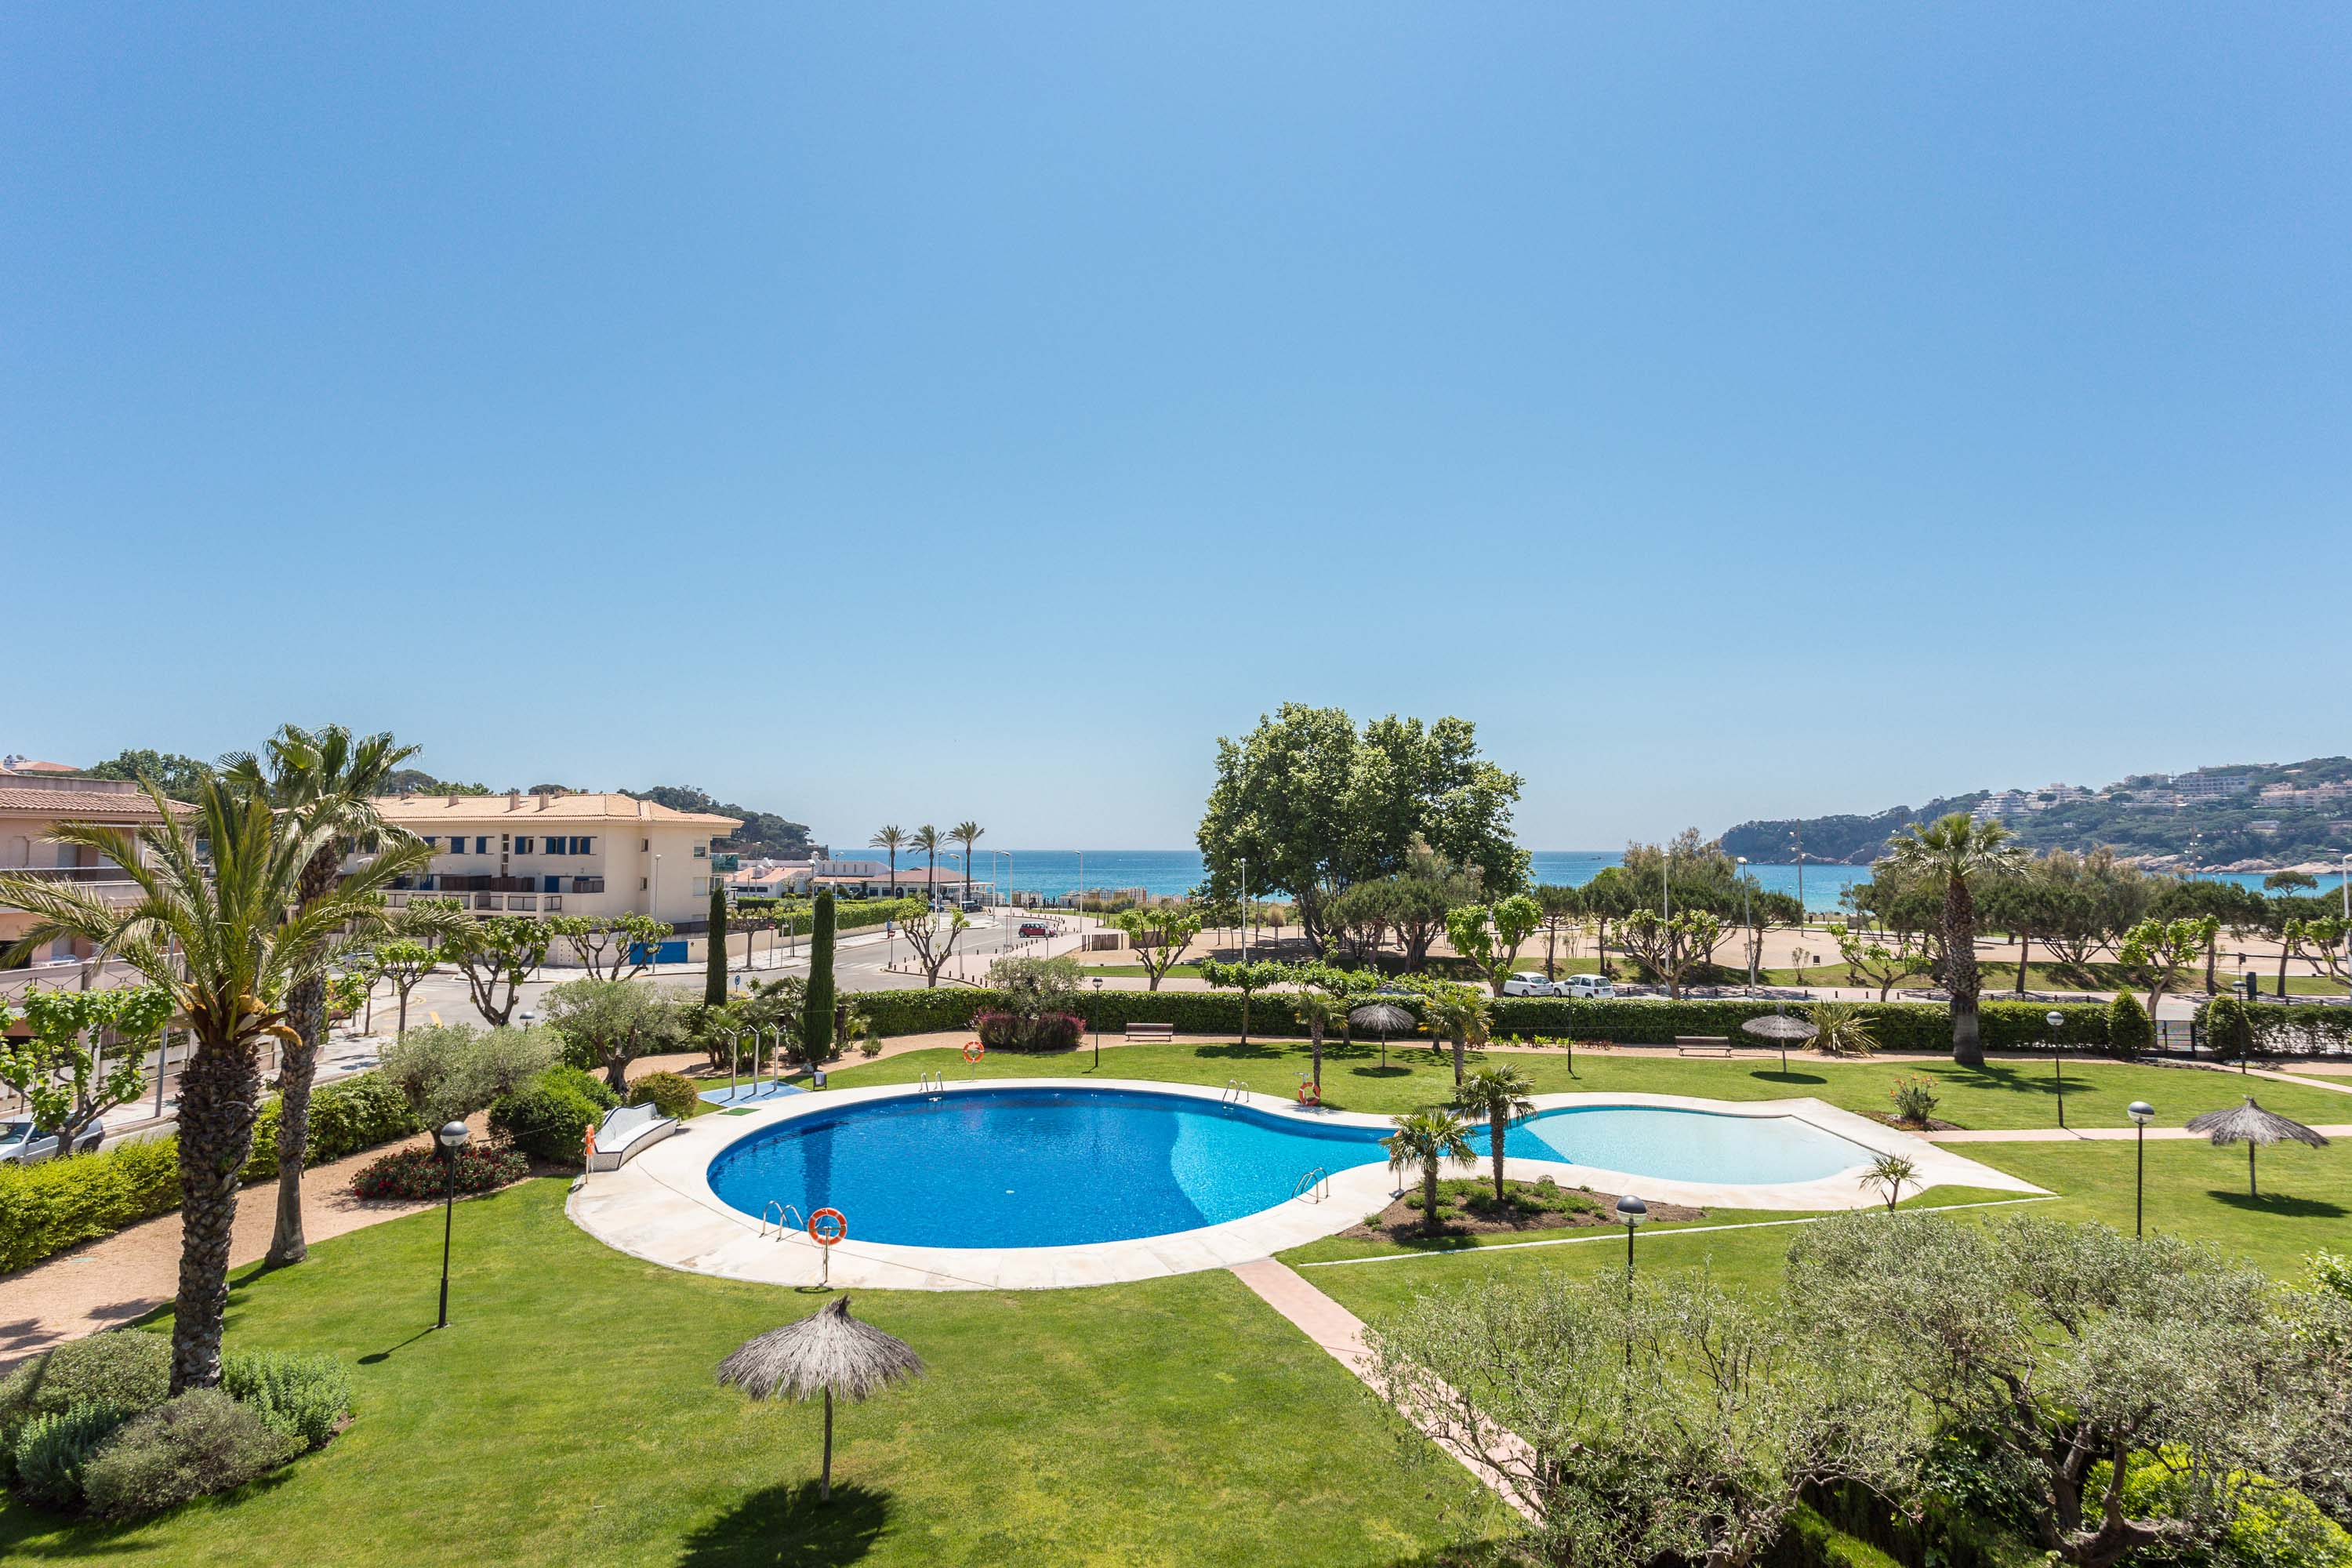 Apartment for Sale at First line apartment in S'Agaro S'Agaro, Costa Brava, 17248 Spain